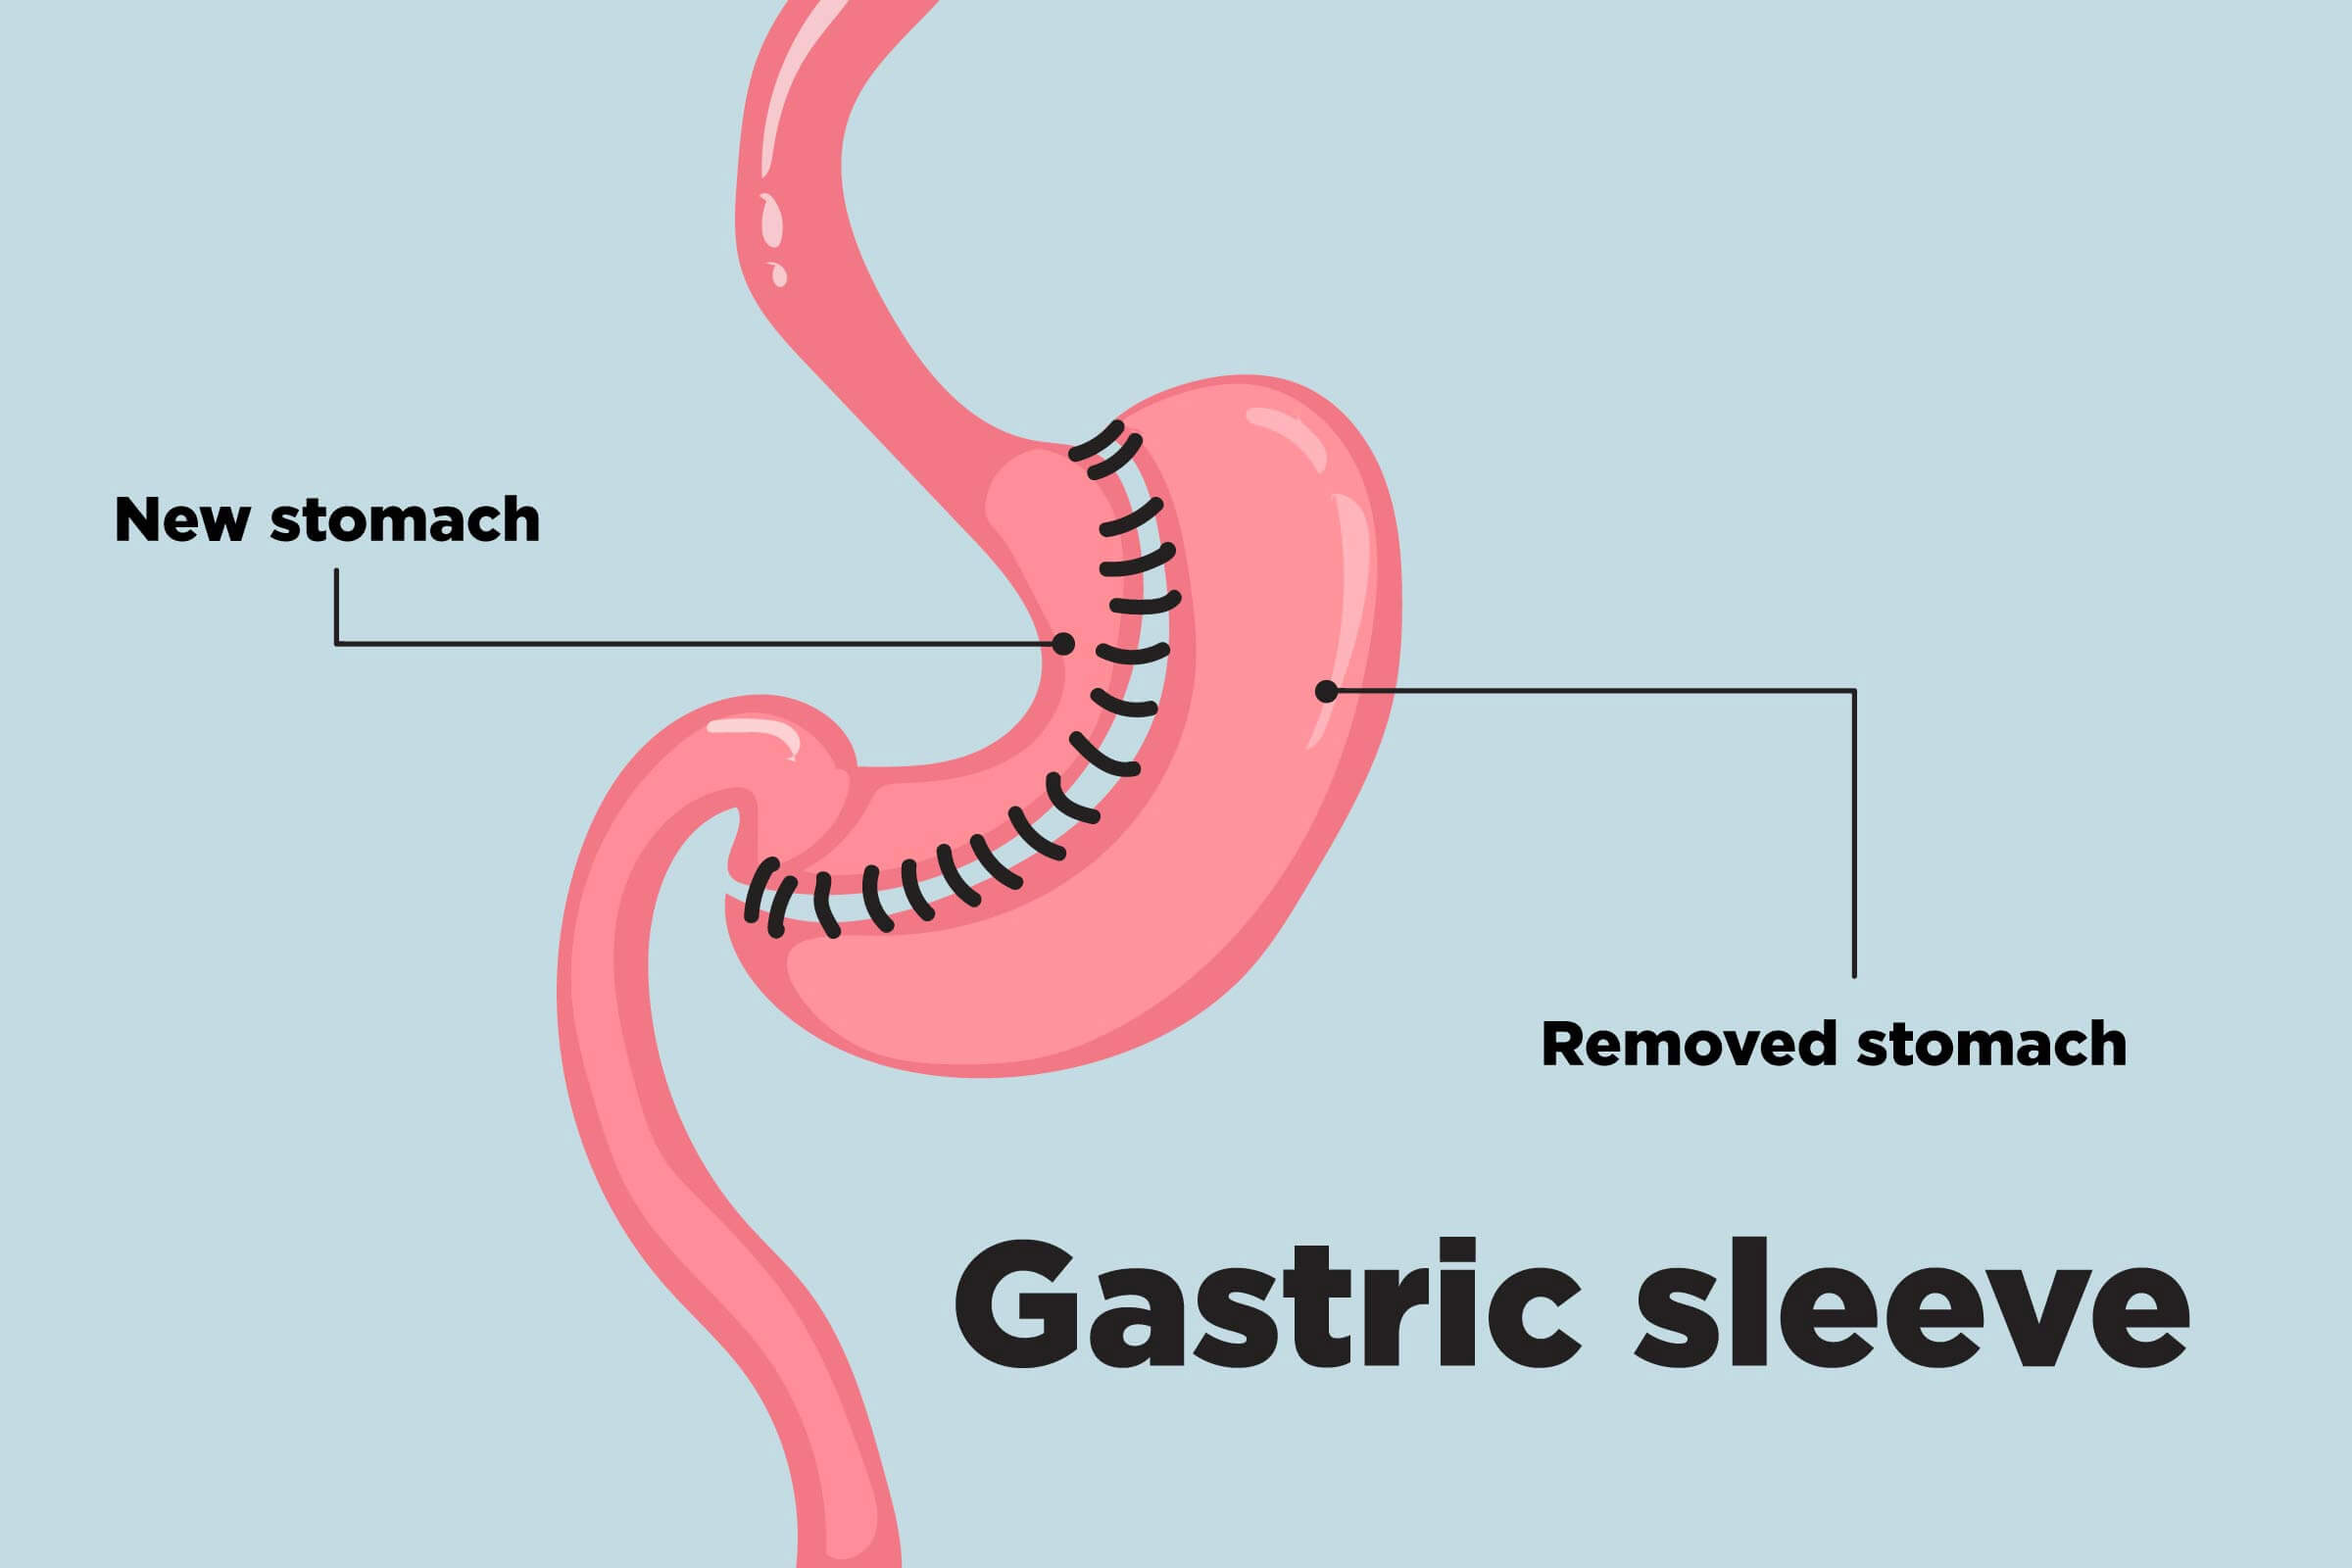 Am I a Candidate for Endoscopic sleeve gastroplasty?